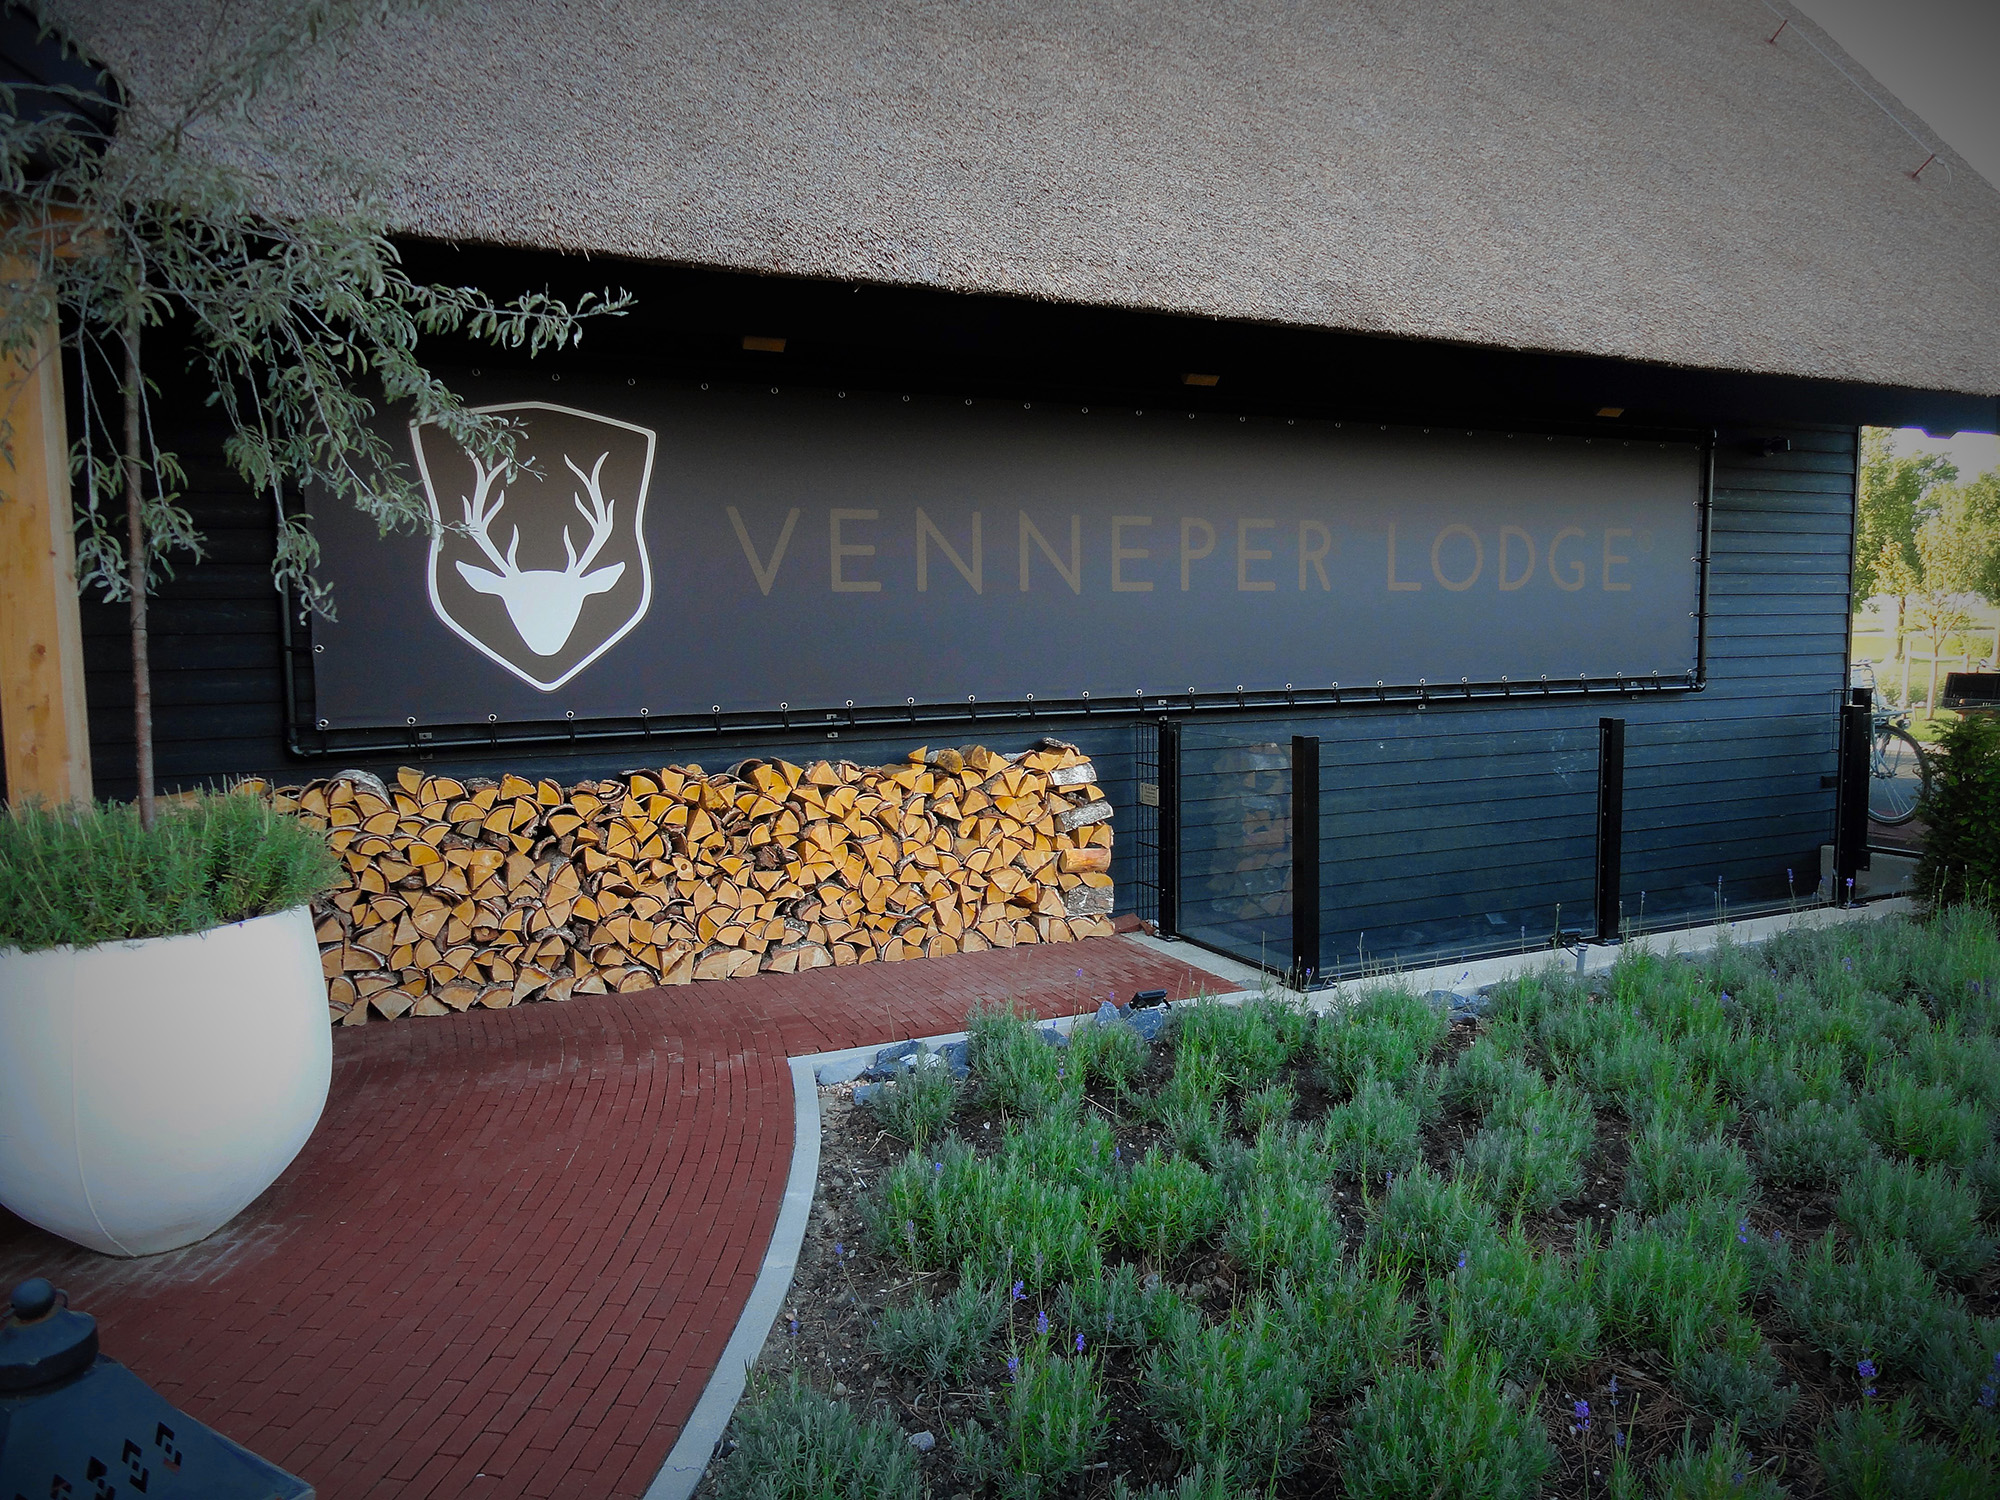 Intree venneper lodge